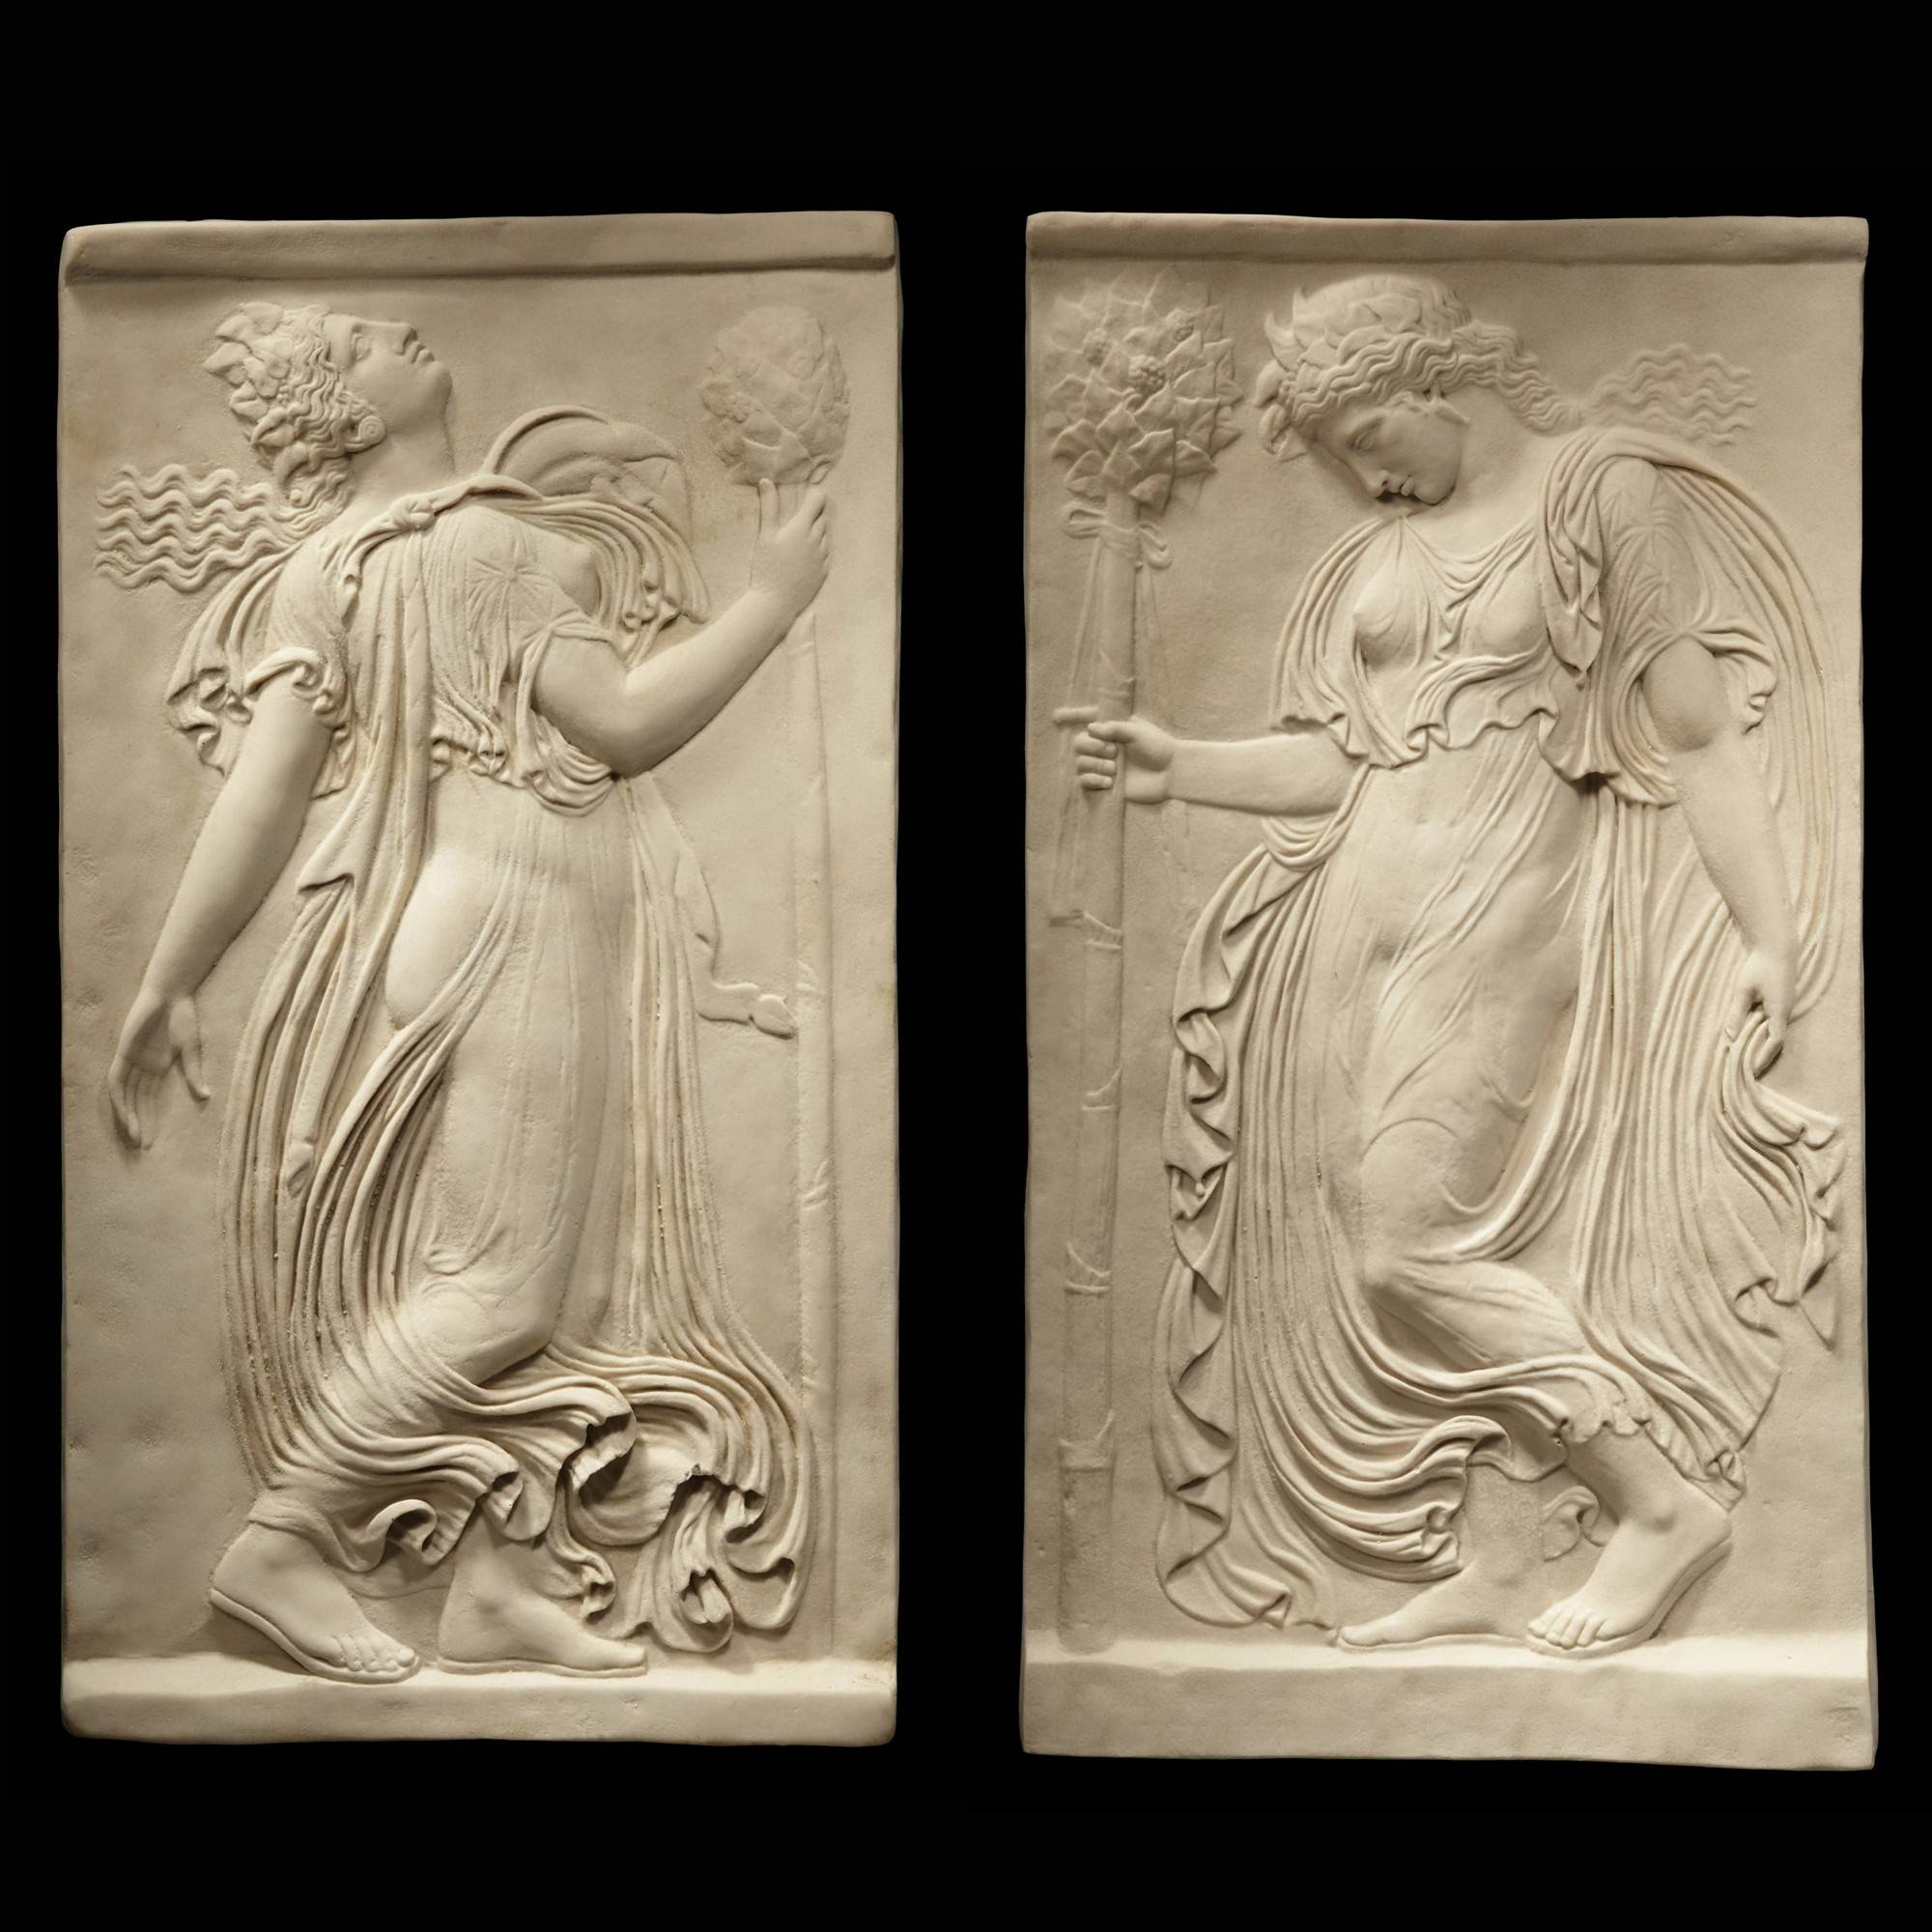 Greek Goddess Pair – Ancient Greek Marble Wall Relief Plaque | S&s Regarding Latest Ancient Greek Wall Art (View 12 of 25)